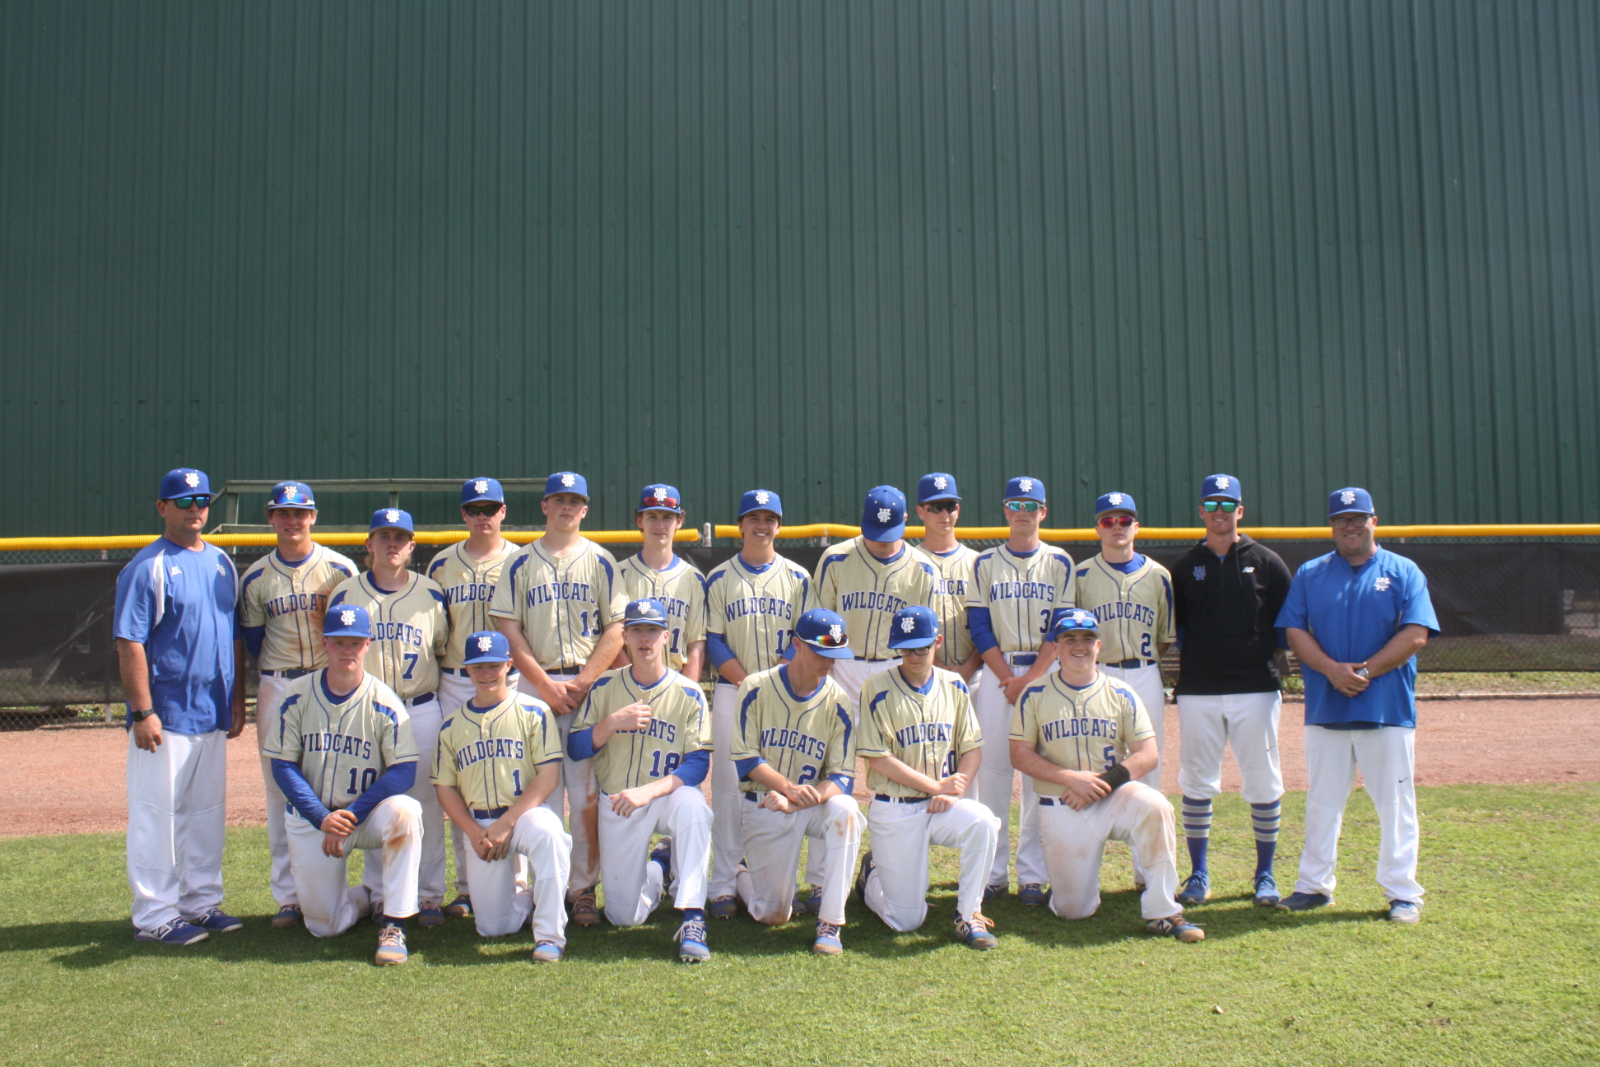 Spring–Baseball–Wildcats Fall in Final 2 Games of Spring Training, Return to Tennessee 2-2